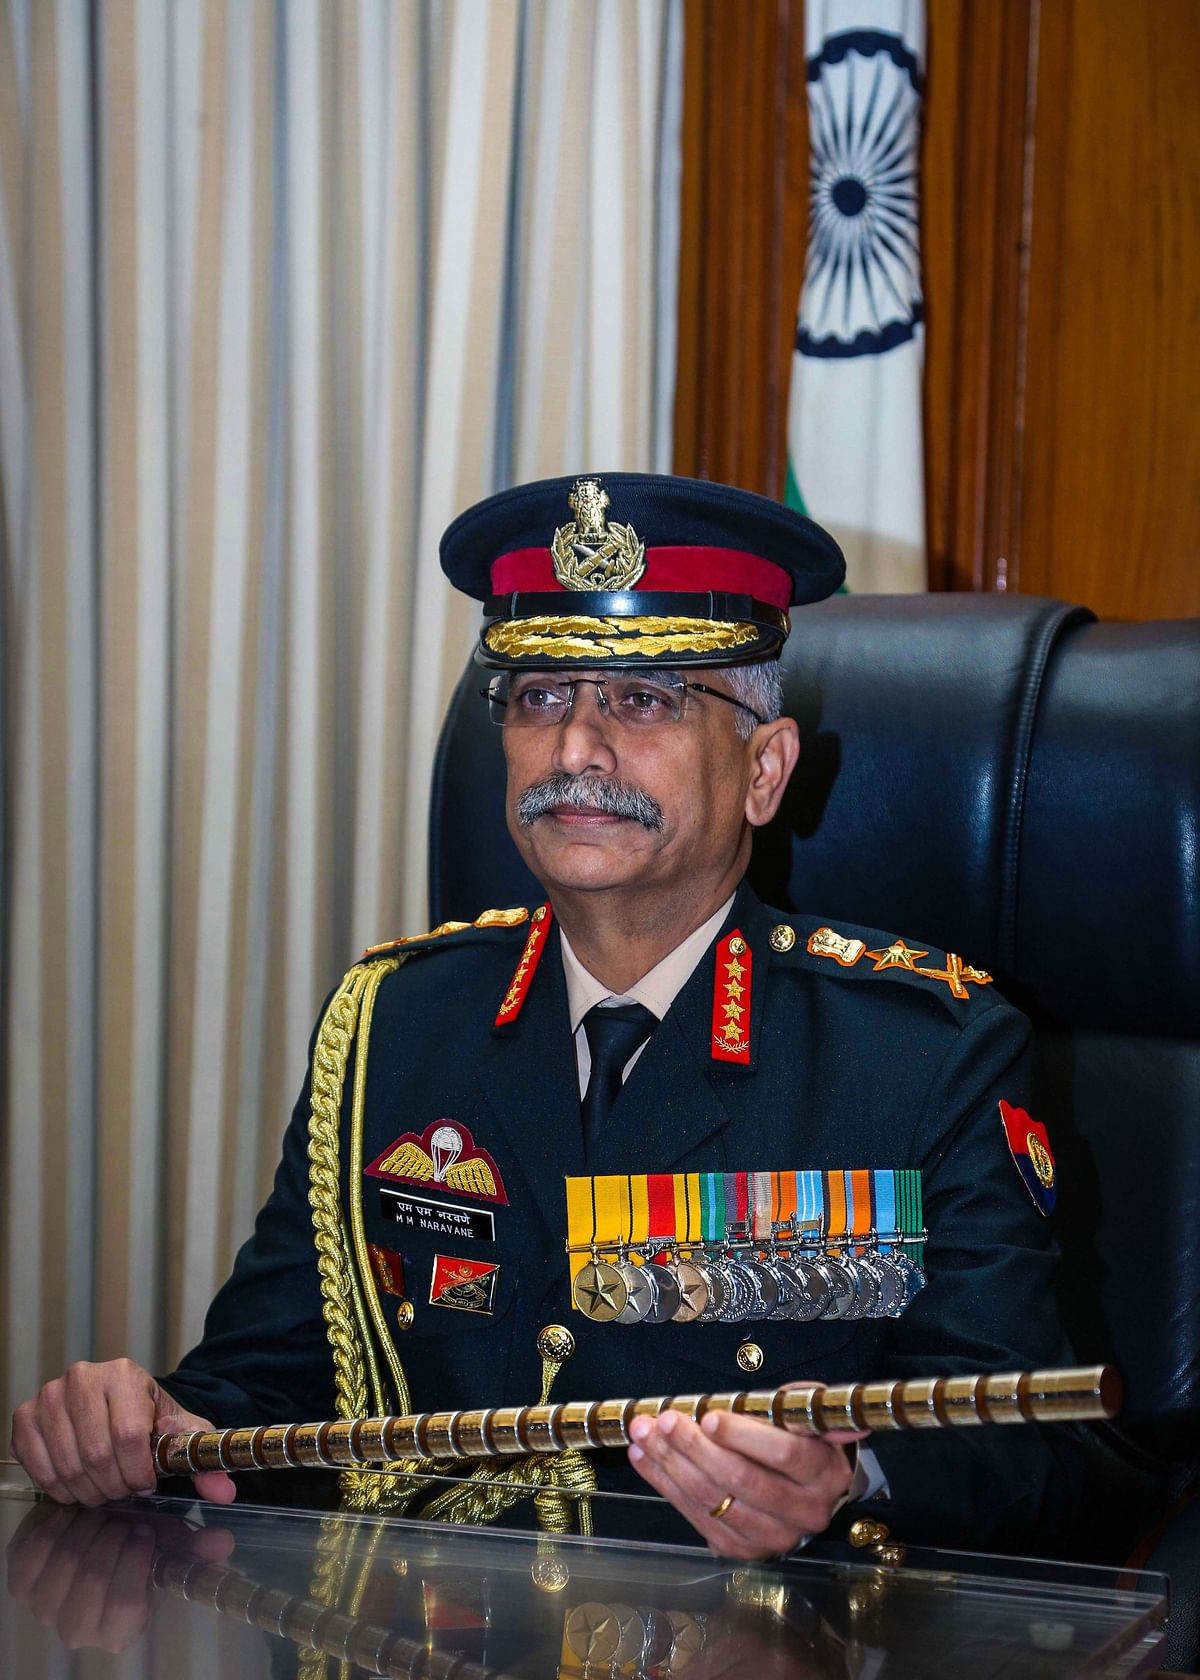 General Manoj Mukund Naravane takes charge as Chief of Army Staff in the presence of Chief of Defence Staff Gen Bipin Rawat (unseen) in New Delhi, Tuesday, Dec. 31, 2019.